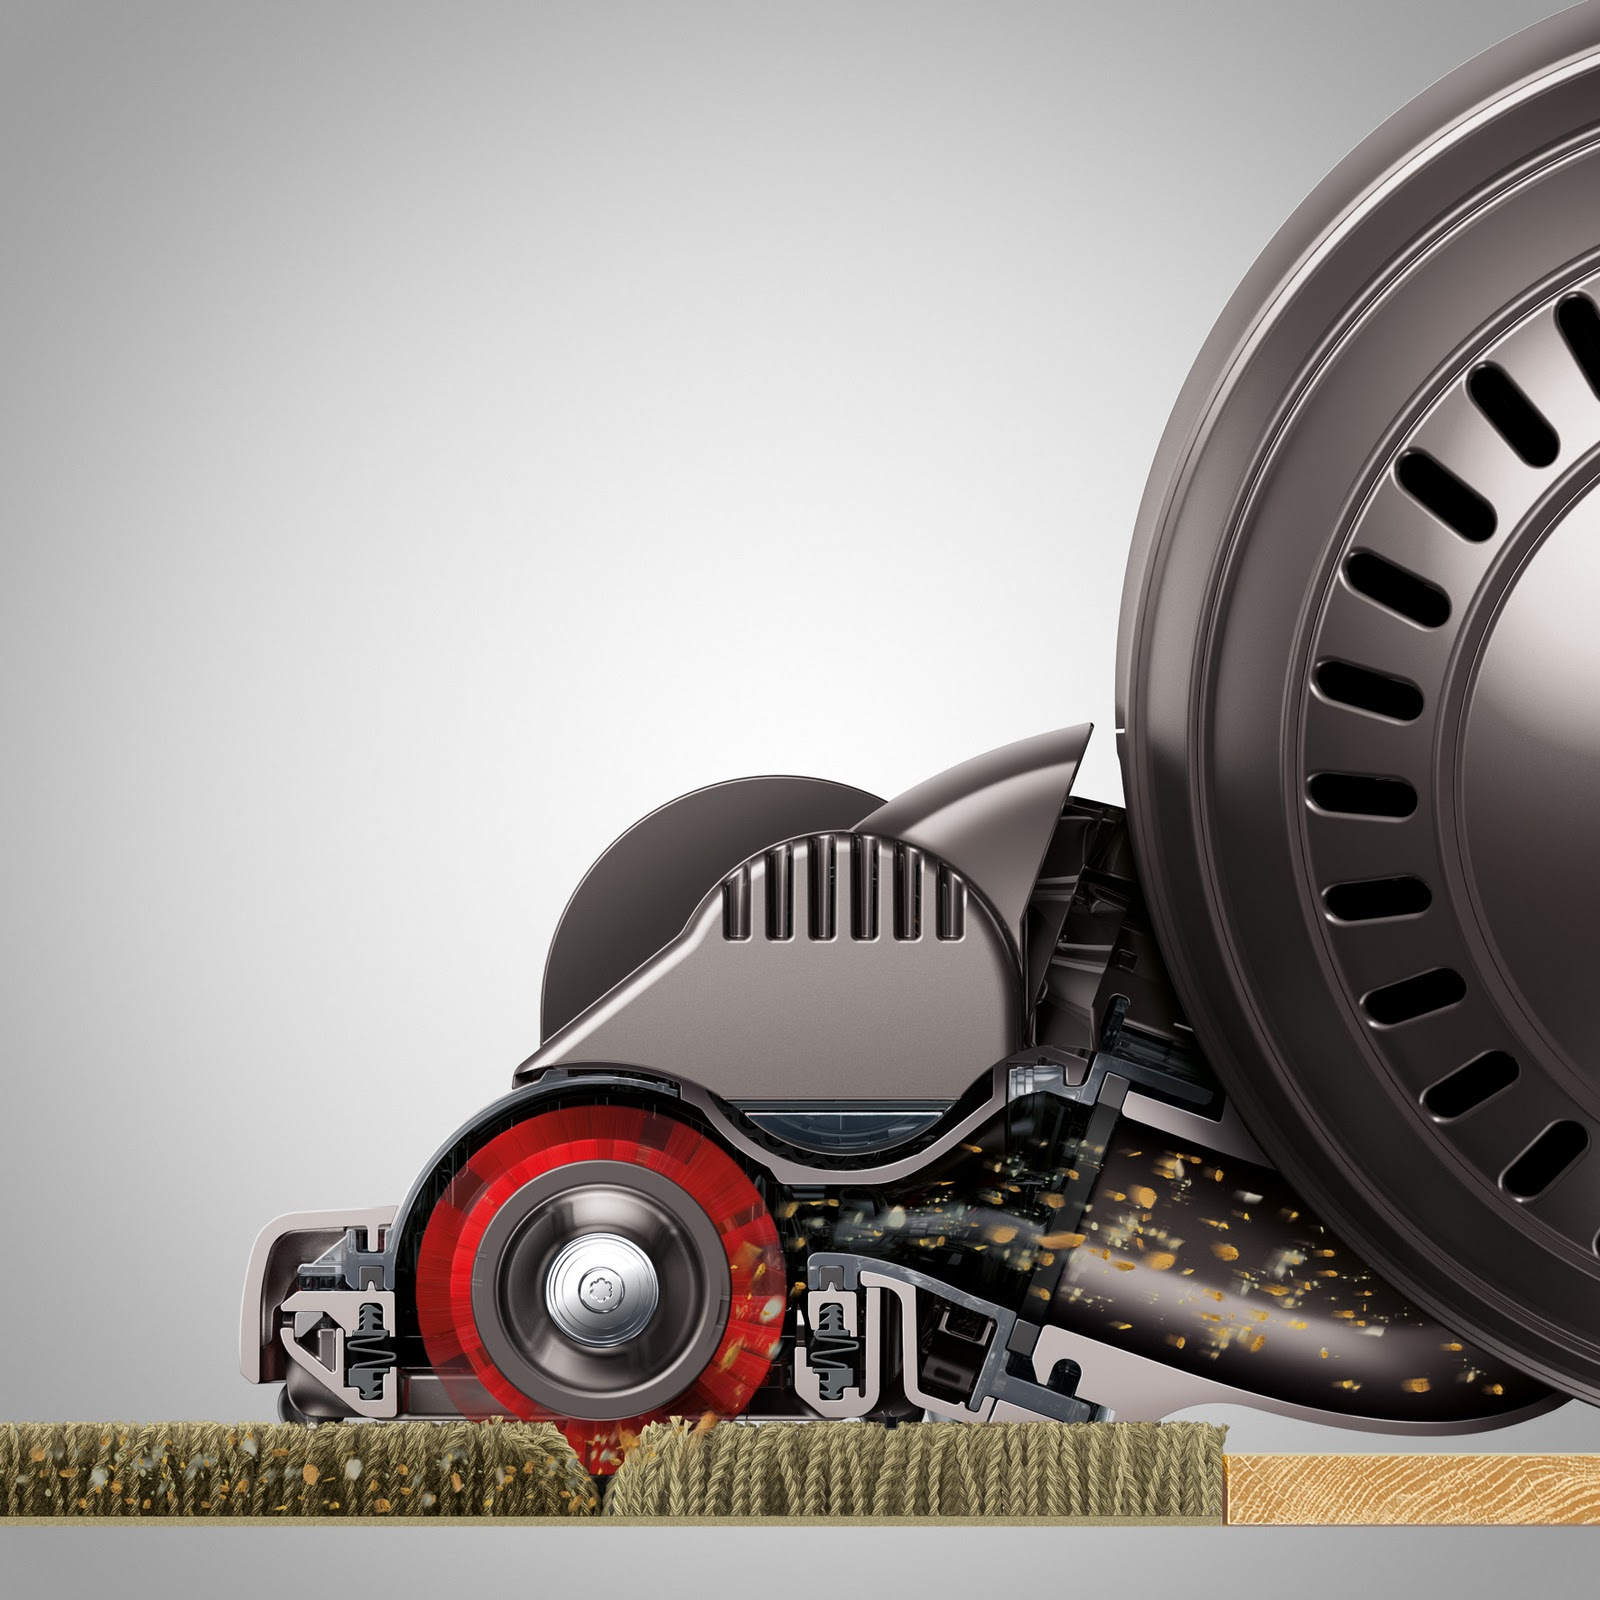 Vacuum Direct Introducing The Dyson Dc41 Animal Ball Vacuum